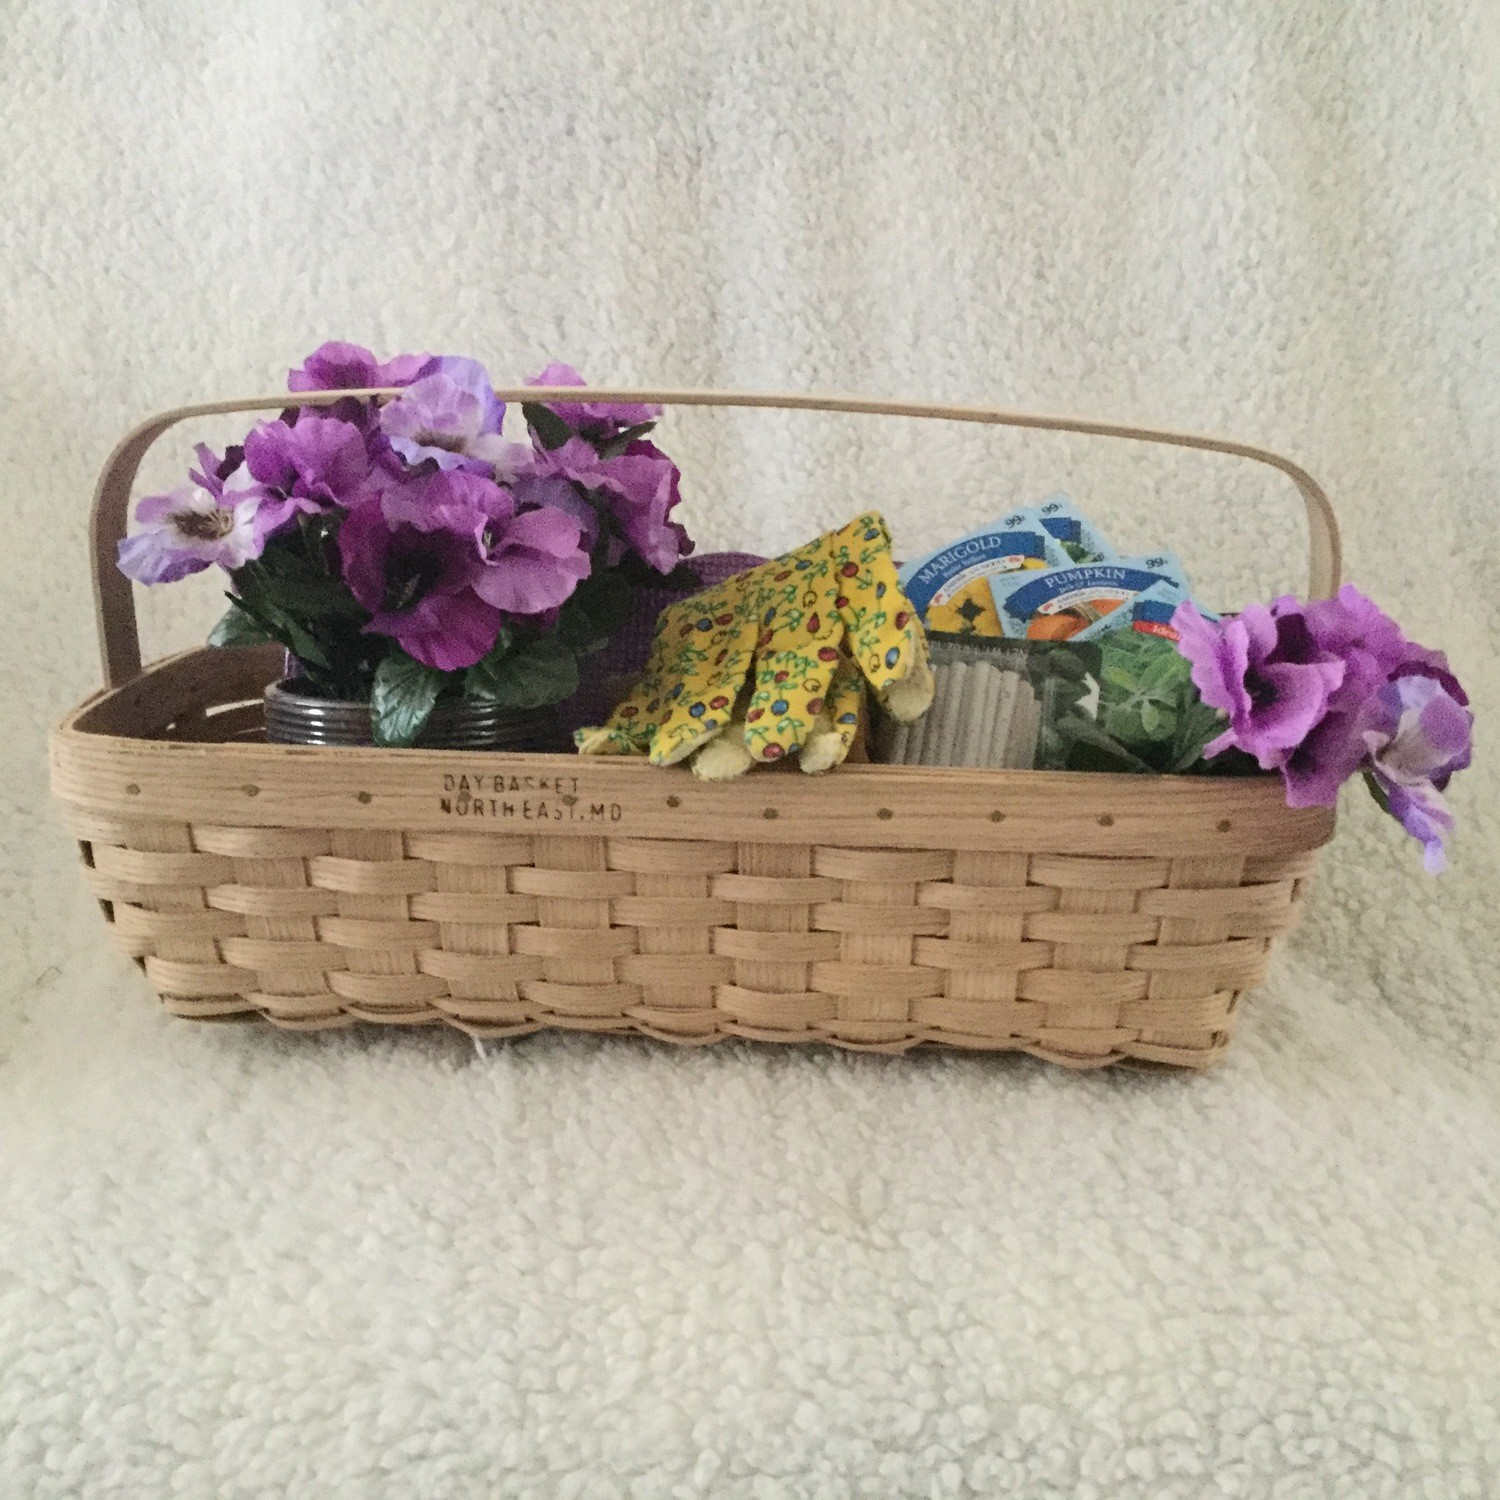 Spring Planter Basket